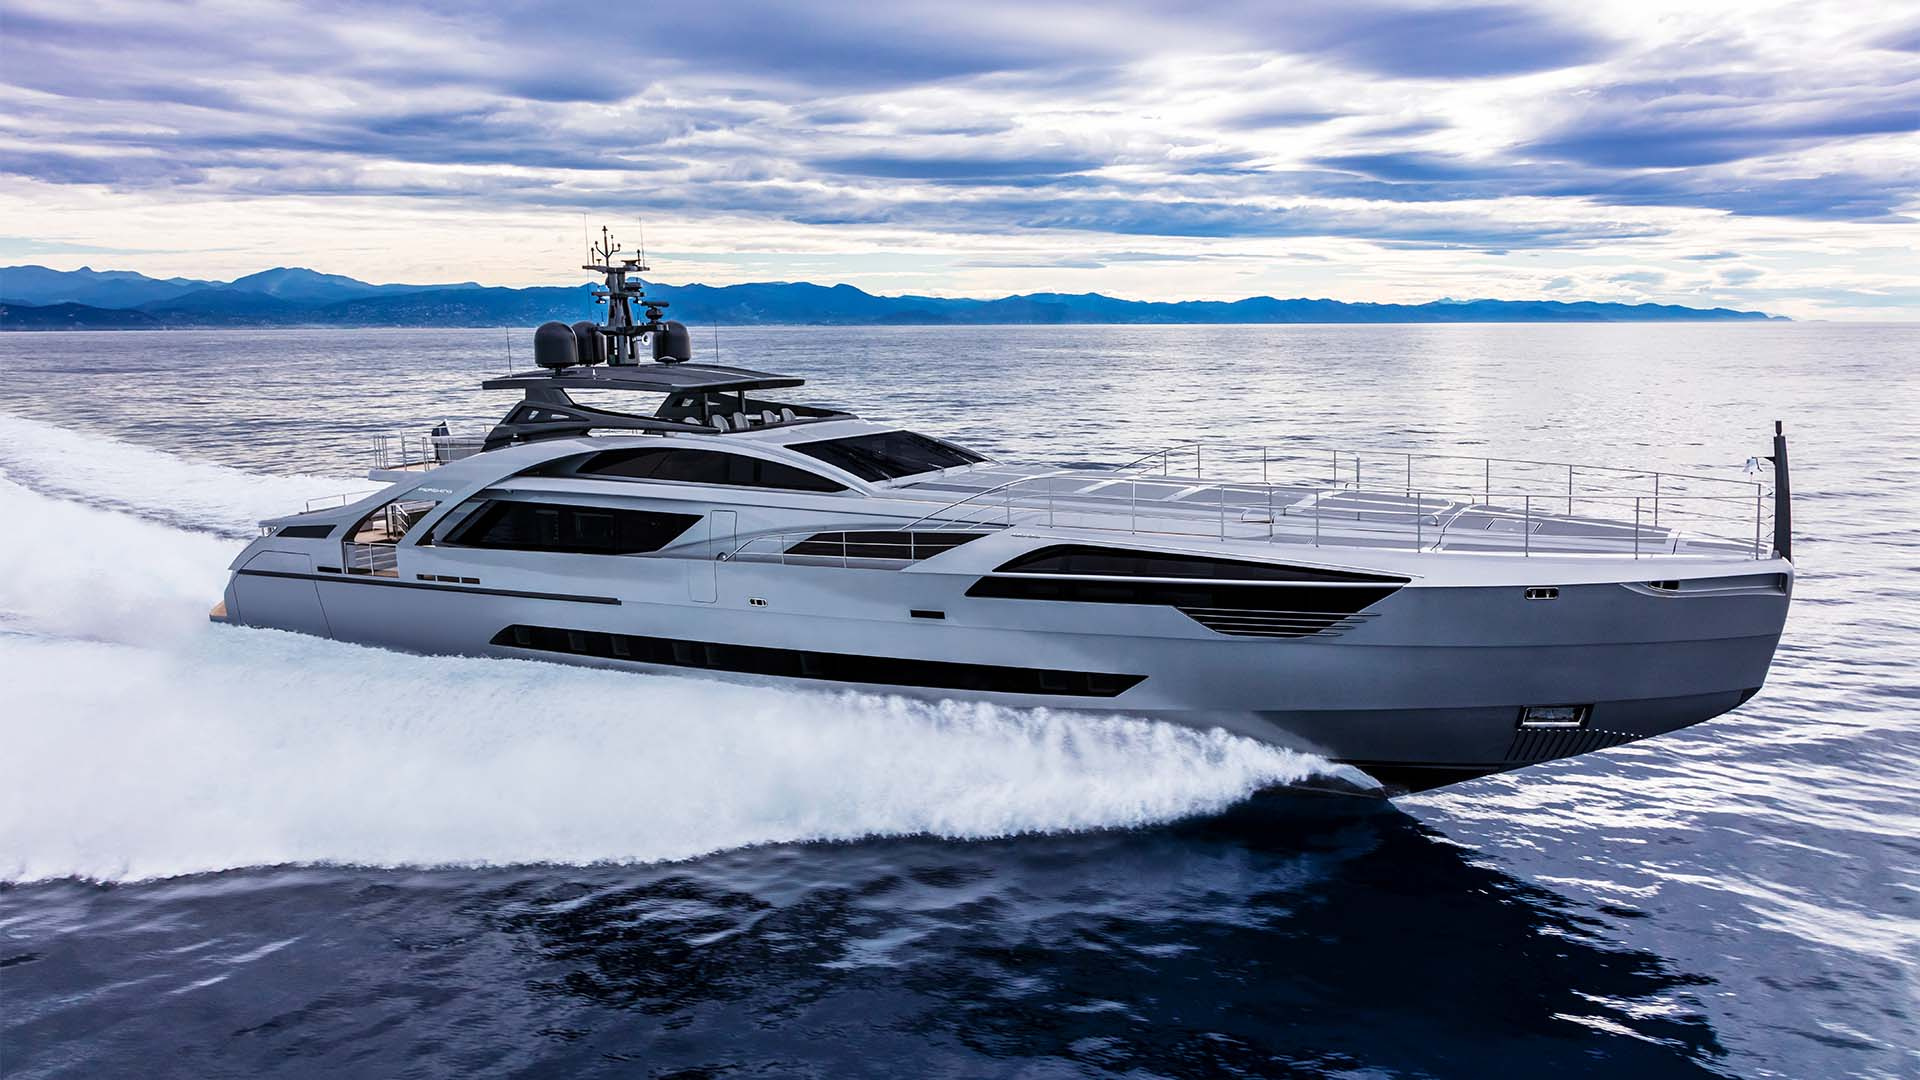 Pershing 140 superyacht